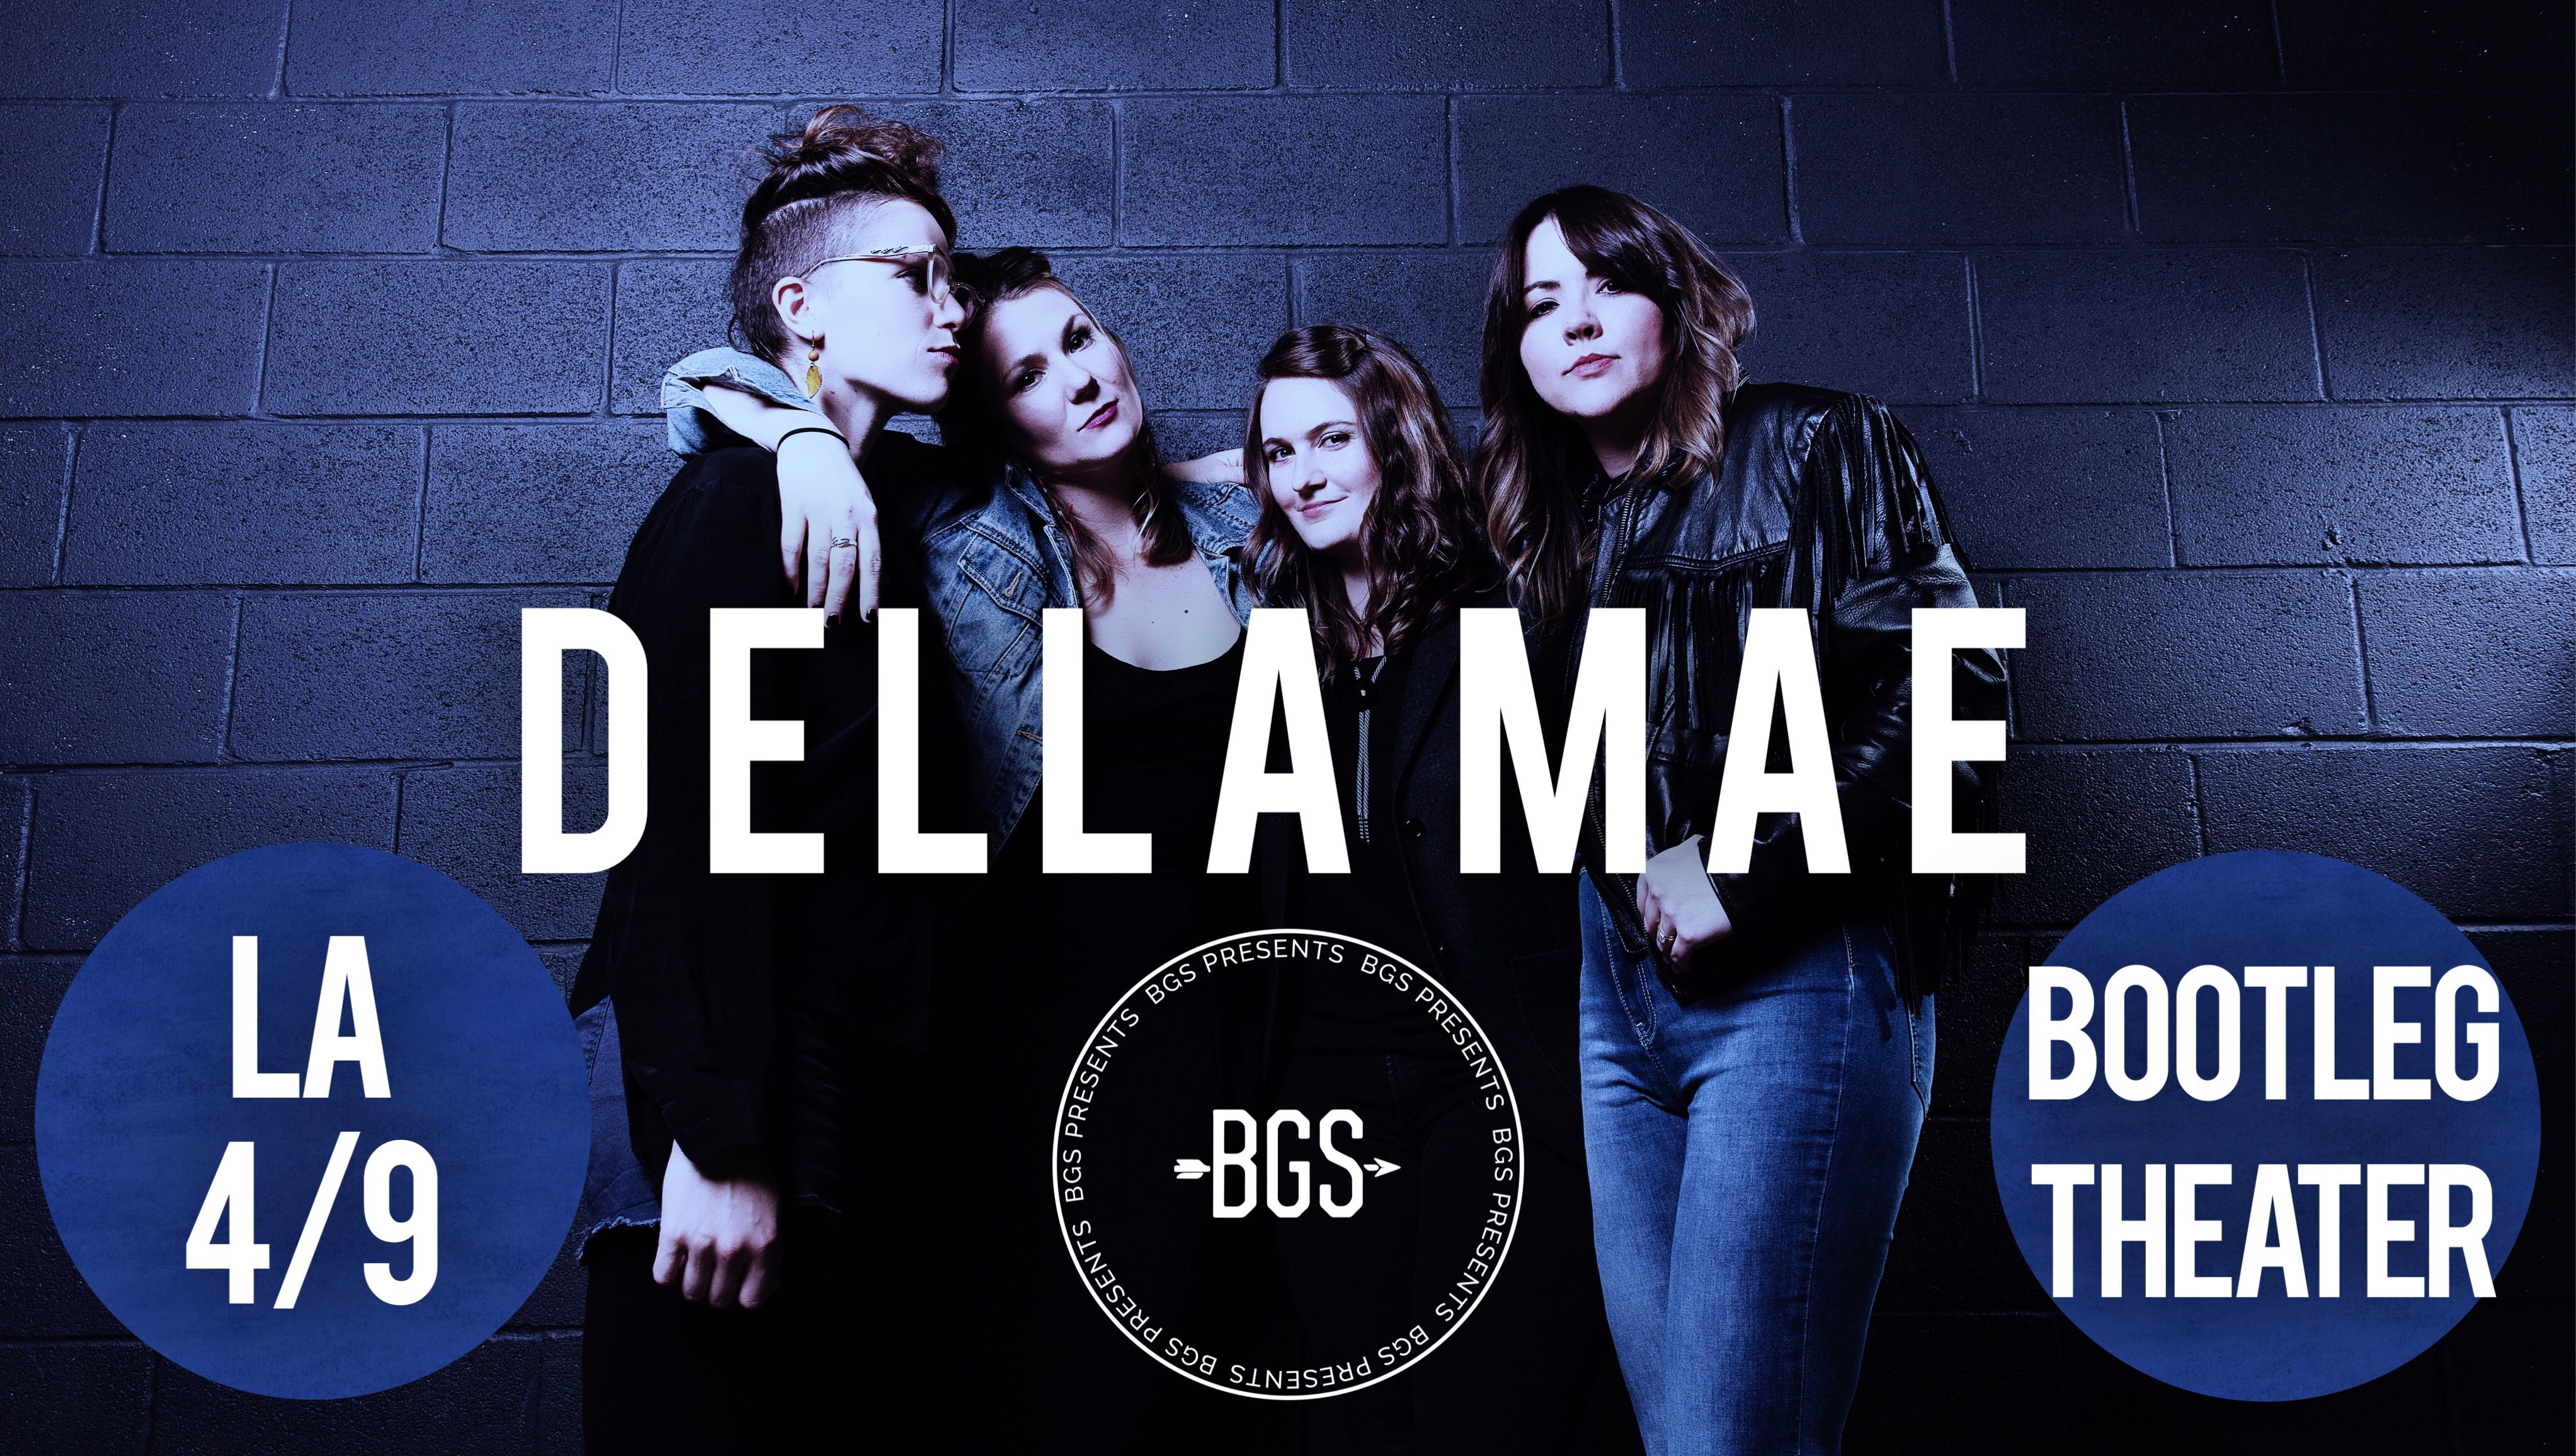 GIVEAWAY - Win tickets to Della Mae at Bootleg Theater (LA) 4/9